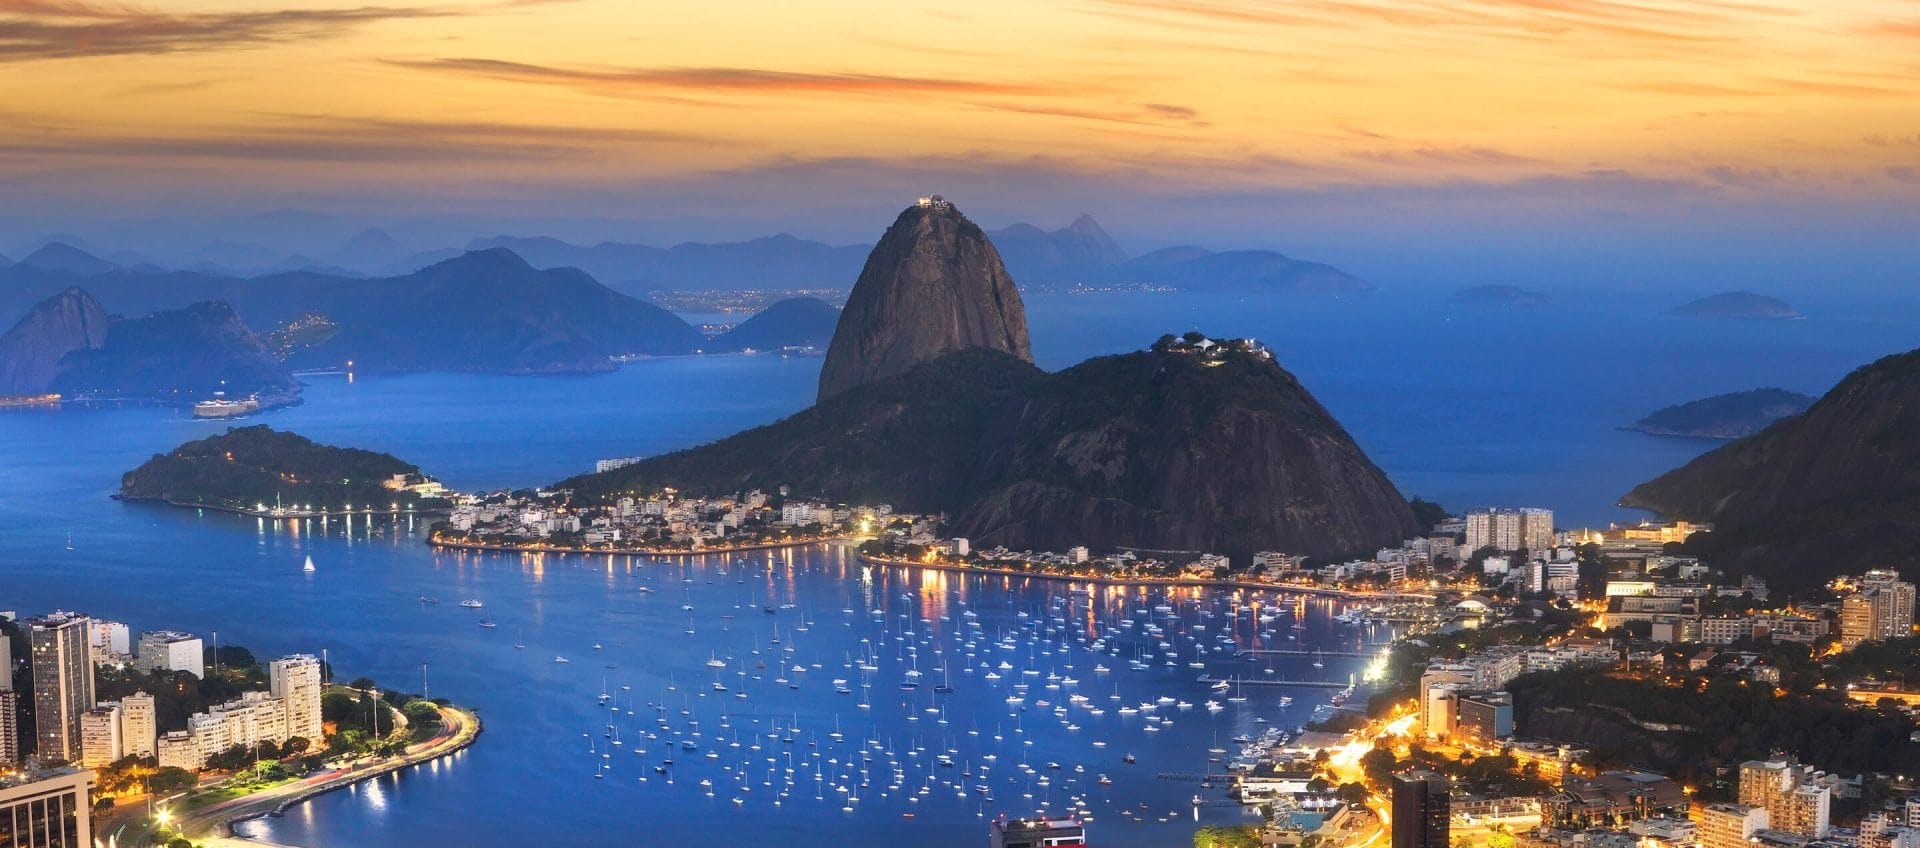 If you are thinking of a trip to South America - Travel to South America and see this incredible view of Sugar Loaf Mountain. This is at night view of Rio de Janeiro in Brazil.